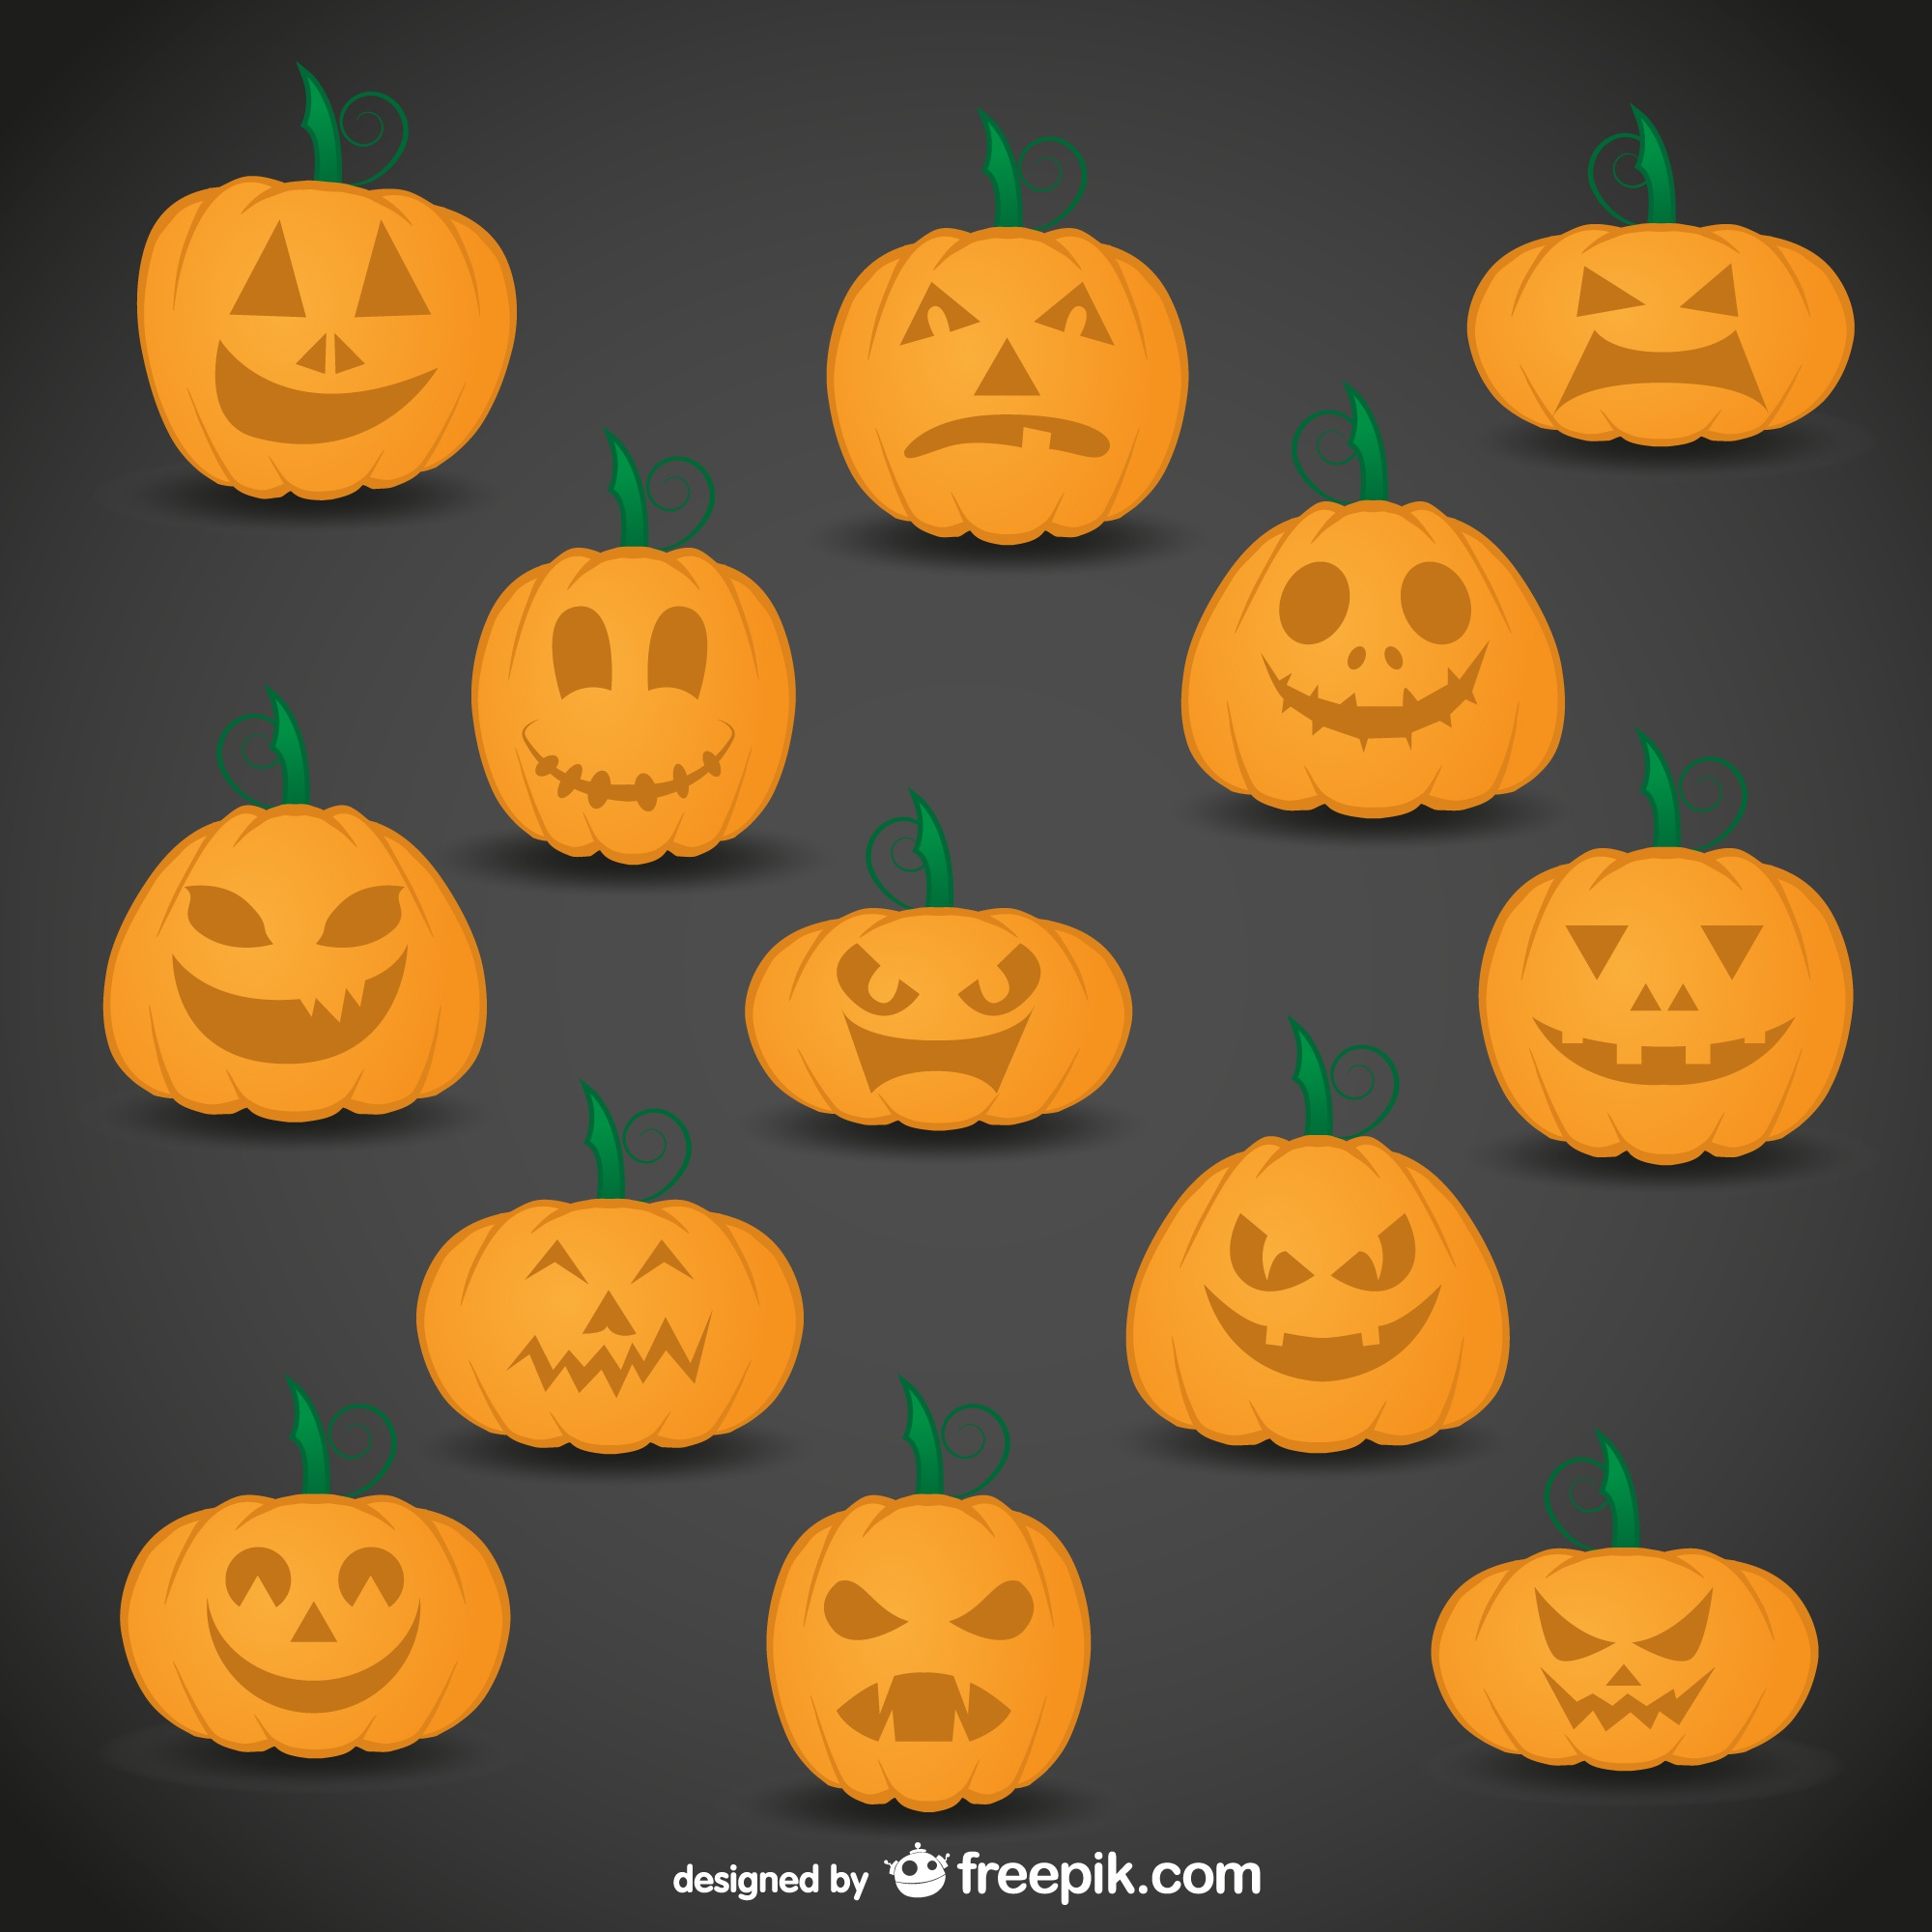 Pumpkins with facial expressions pack